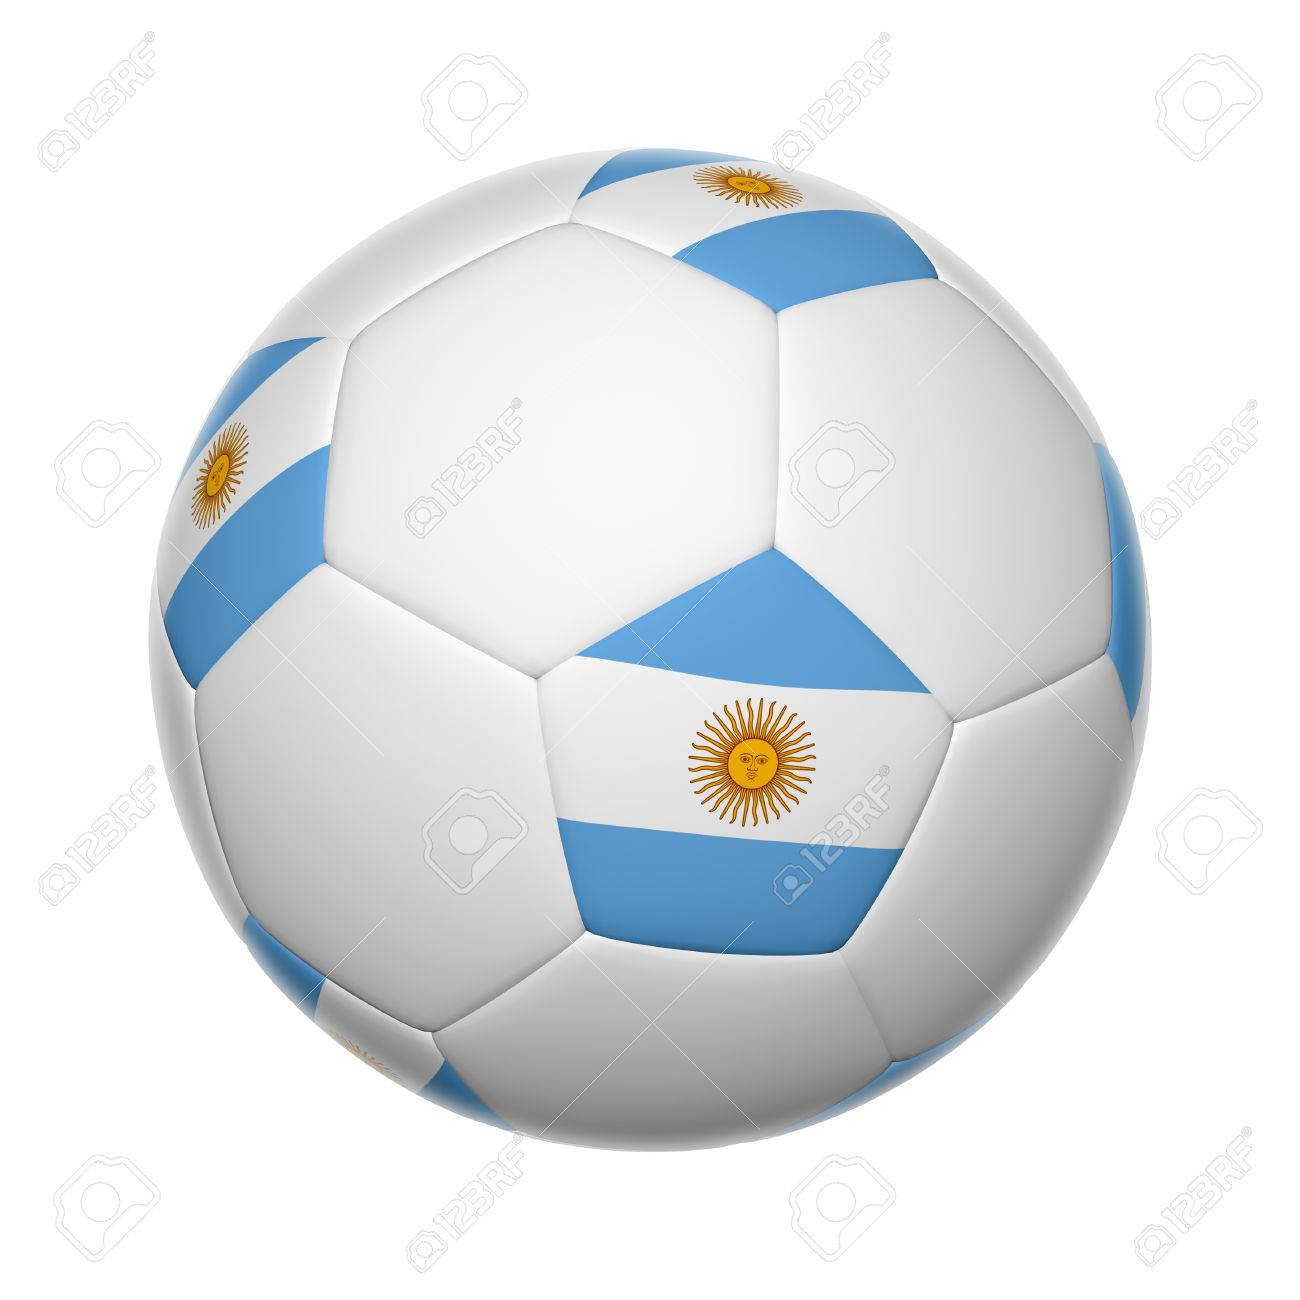 Flags on soccer ball of Argentina Stock Photo - 27713463 2954d2c9af1d